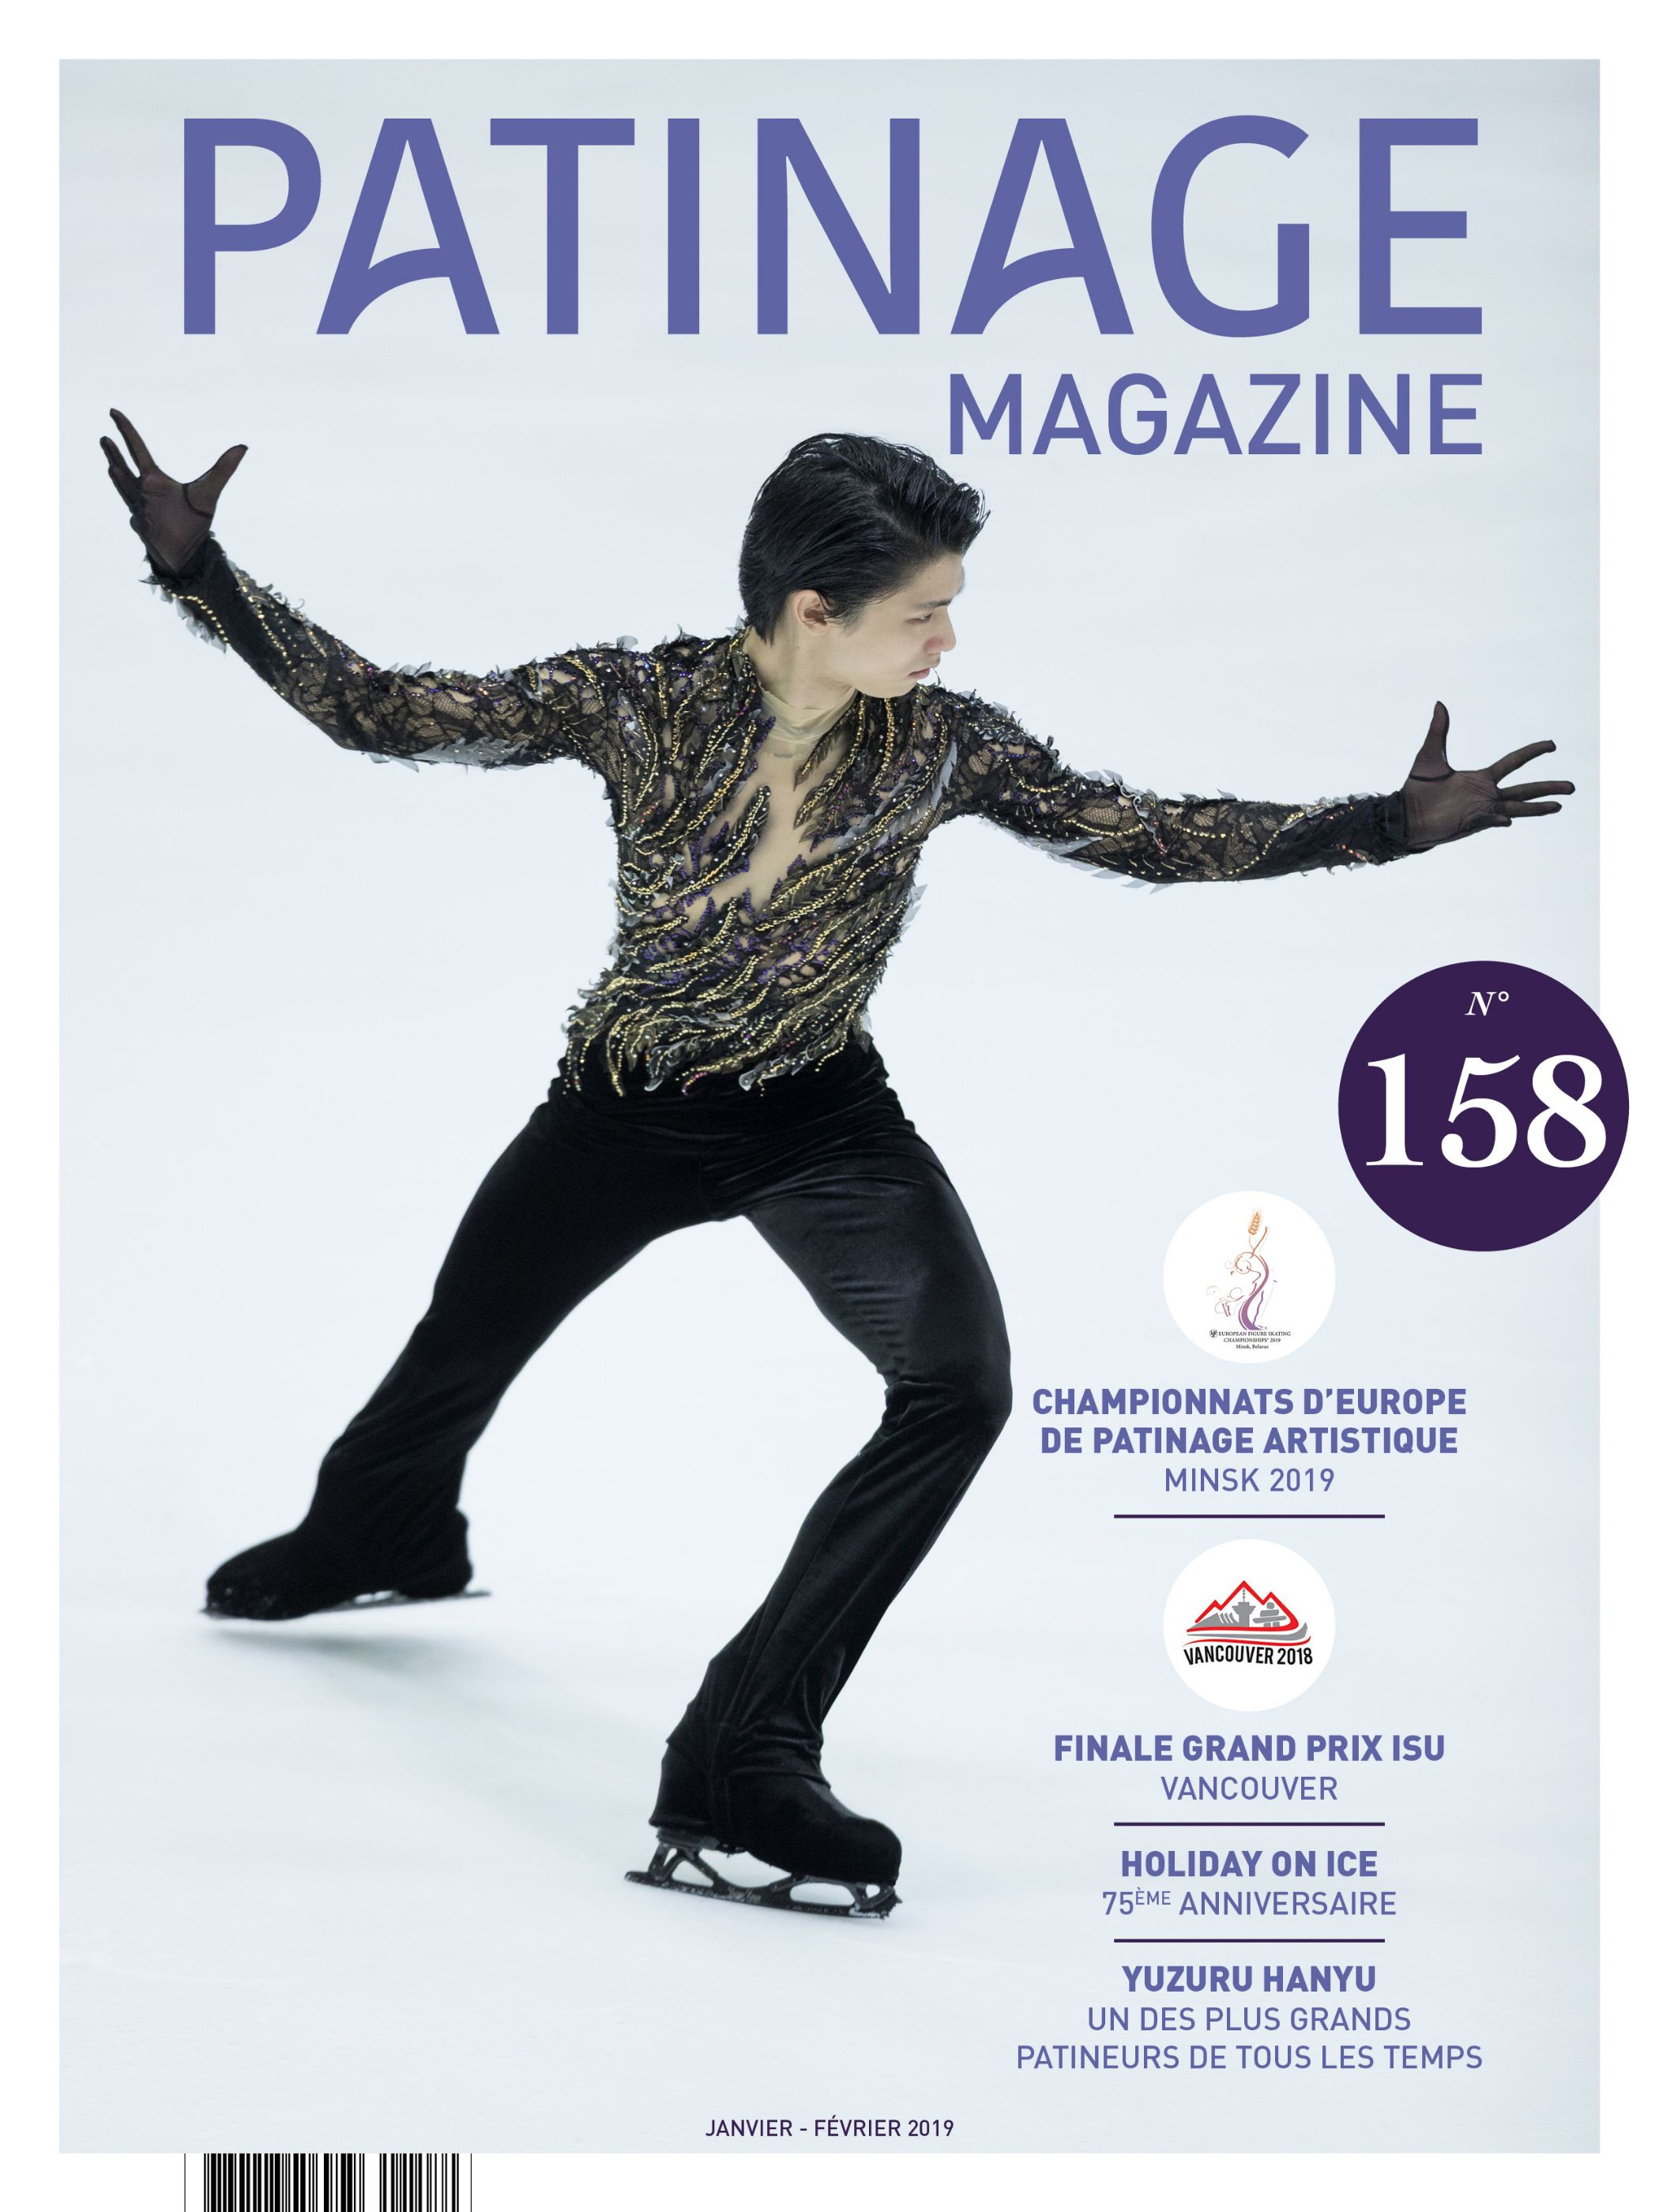 Patinage Magazine Version Anglaise!